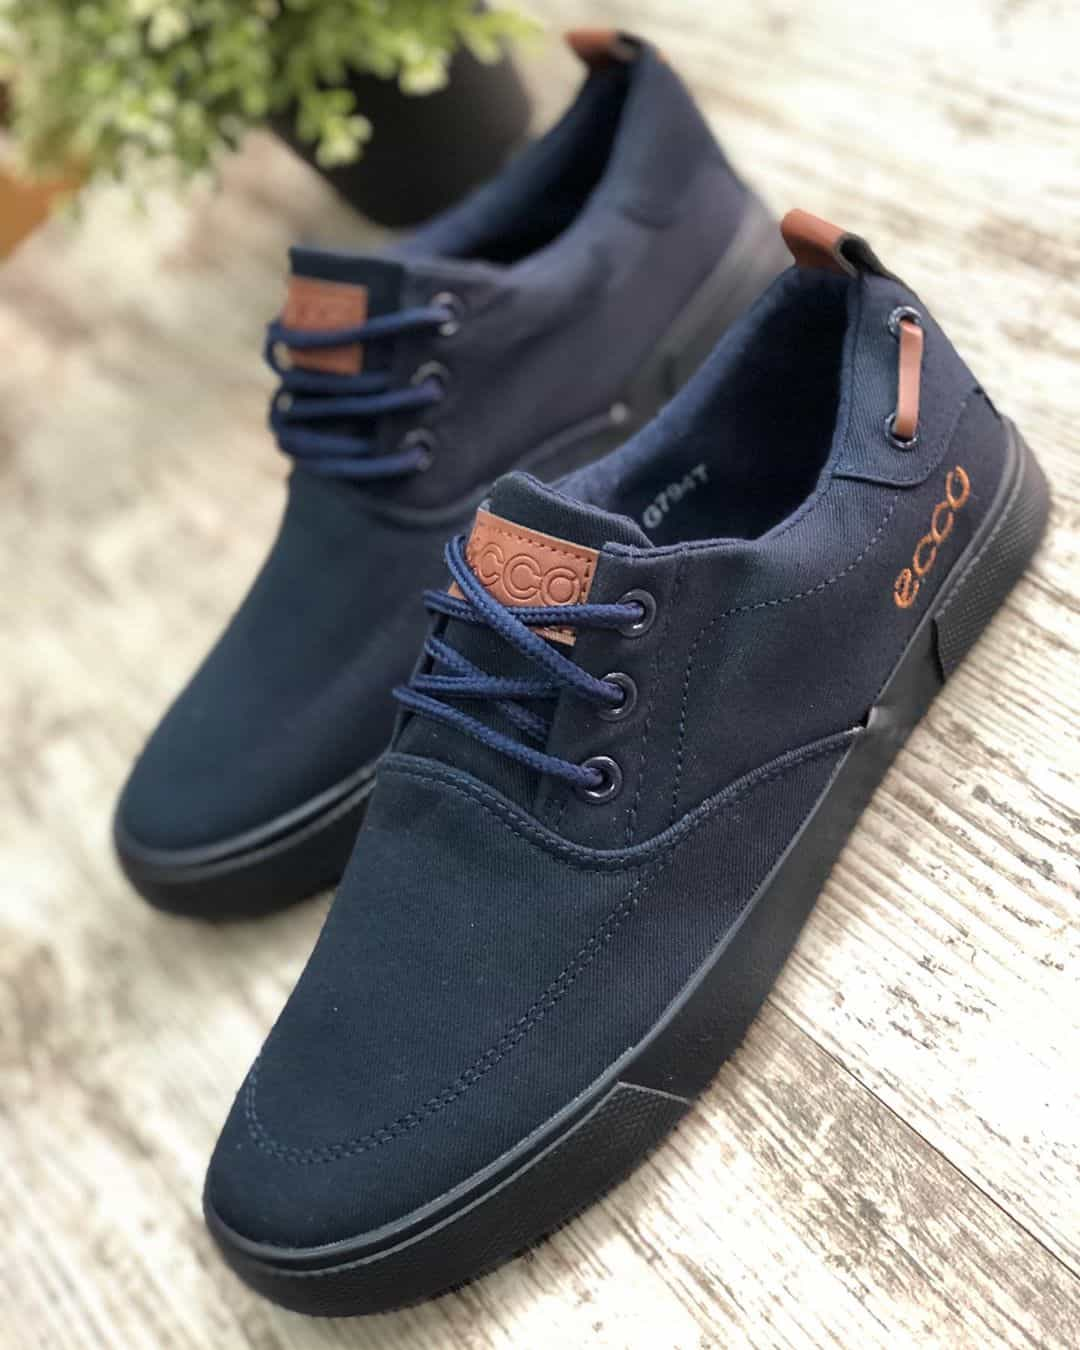 Top 7 mens shoes 2020: Materials and Colors of the Best ...